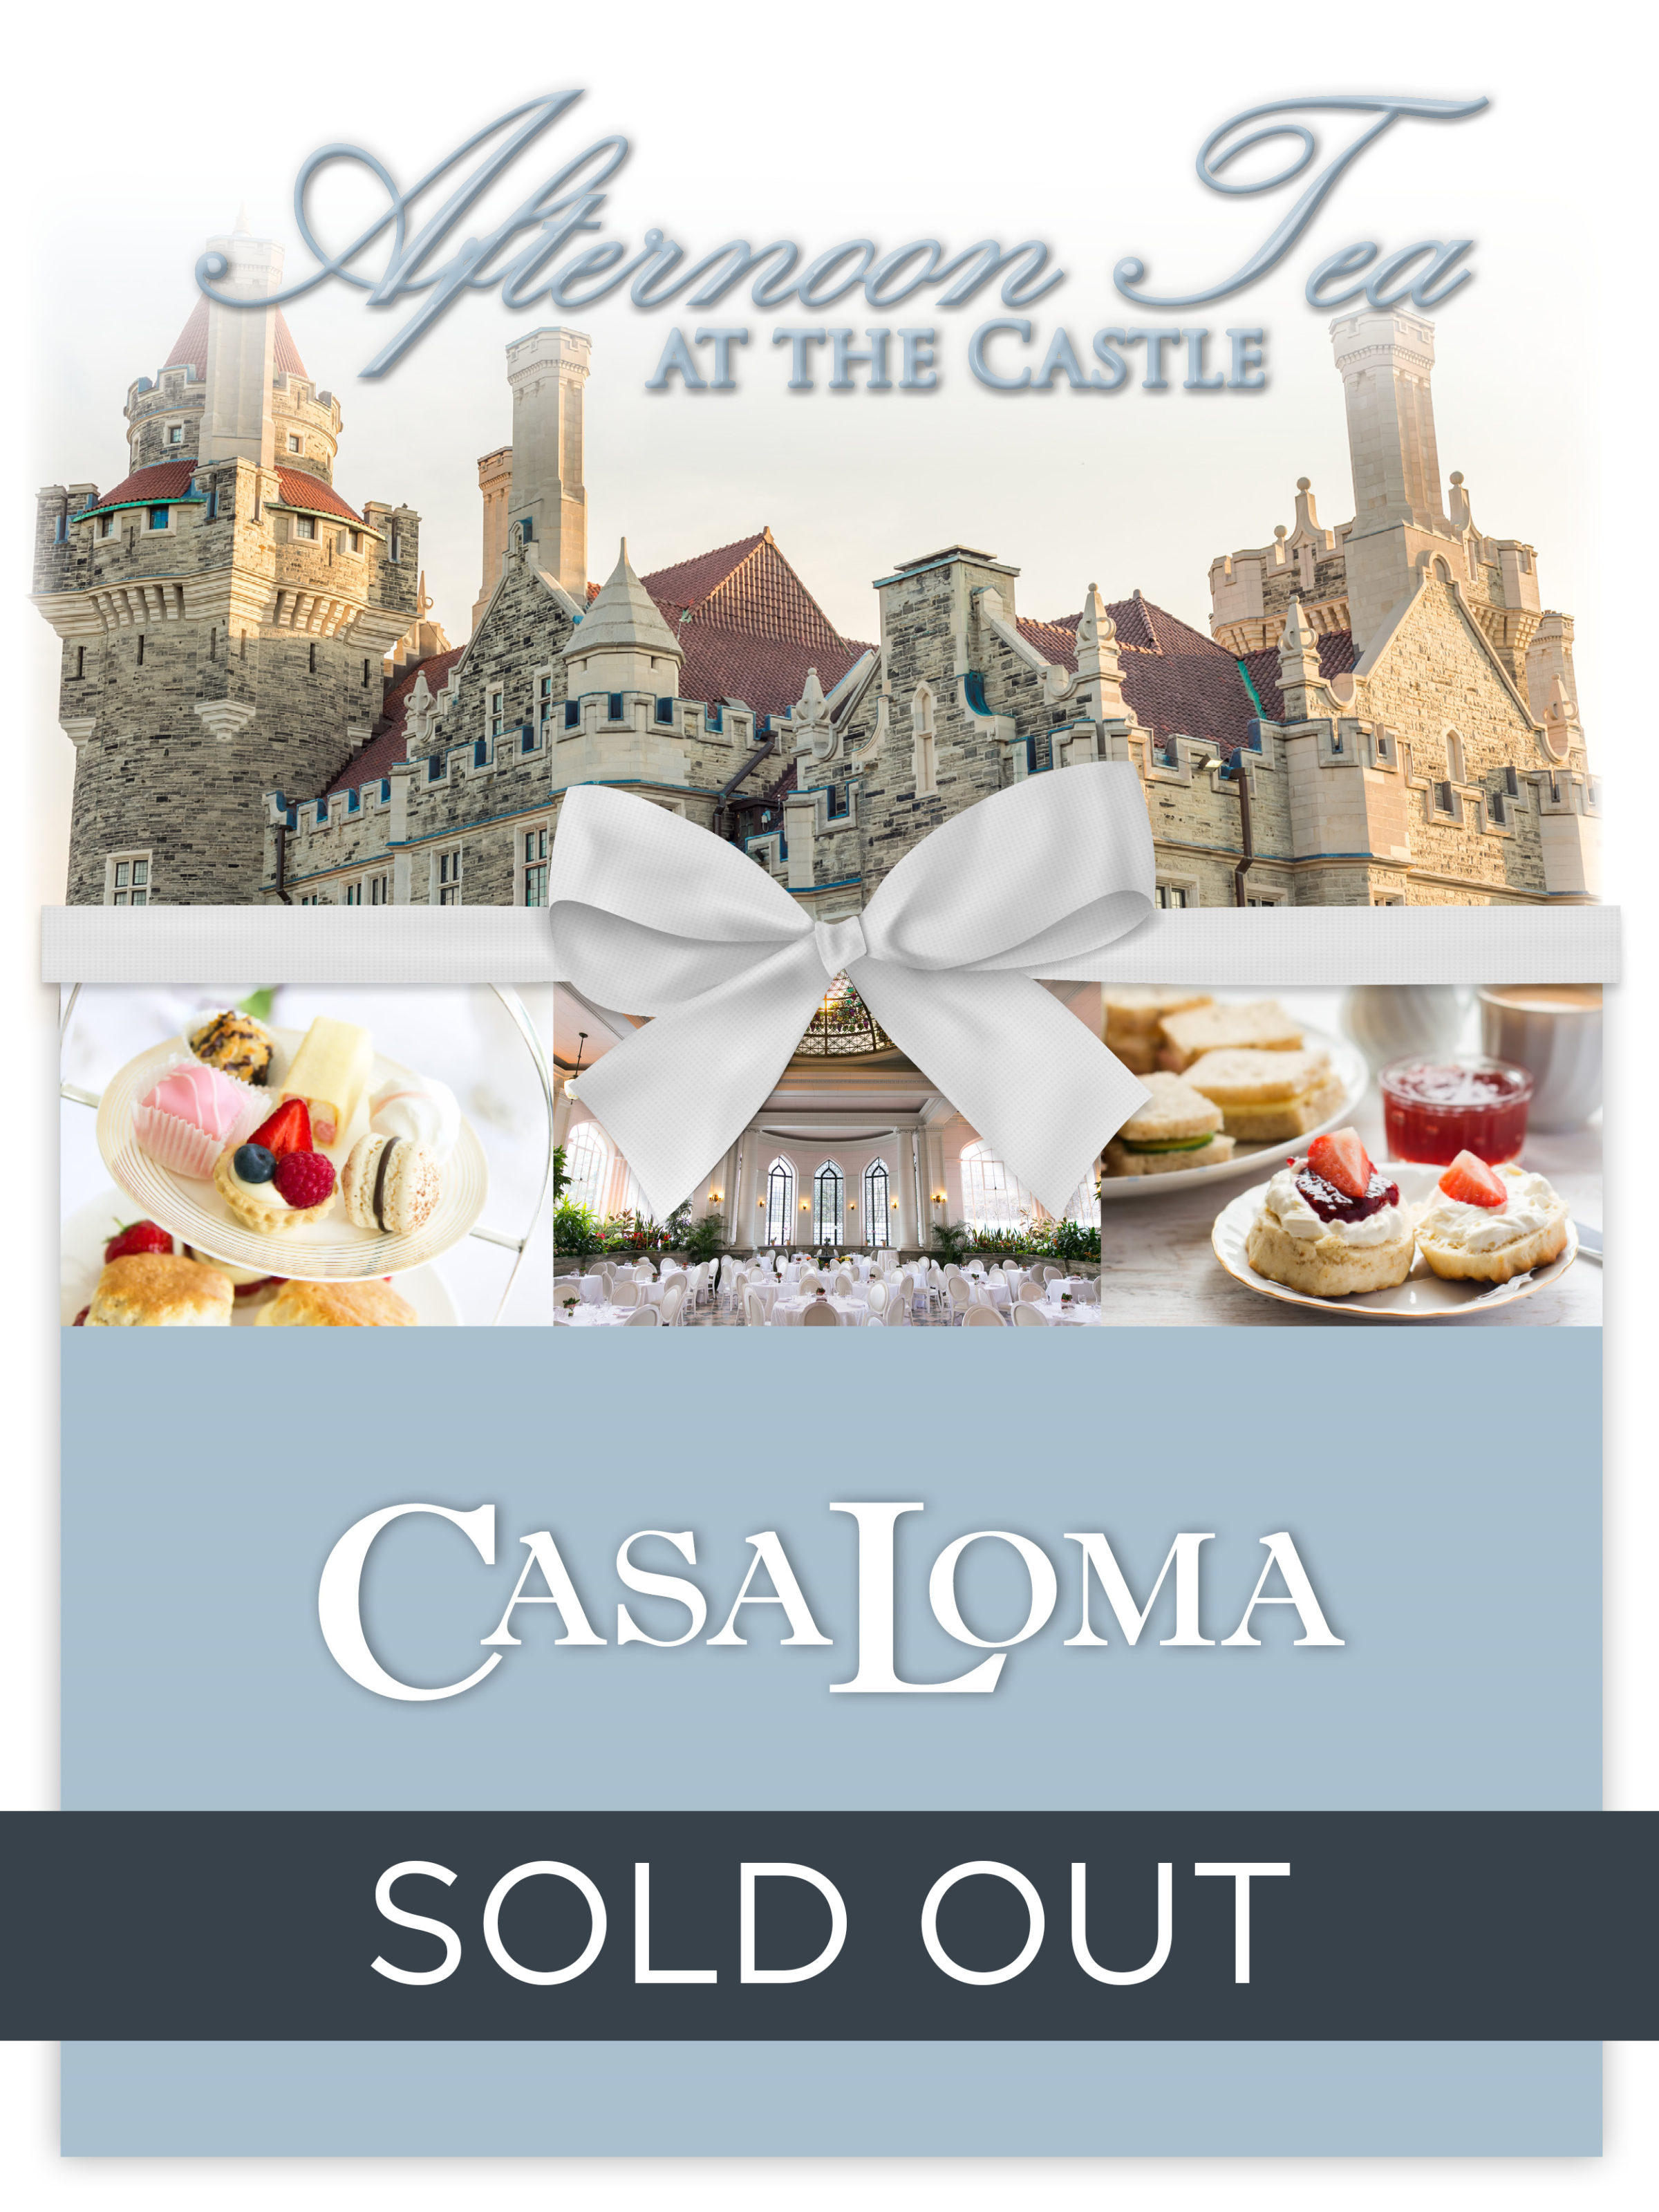 Afternoon Tea at the Castle